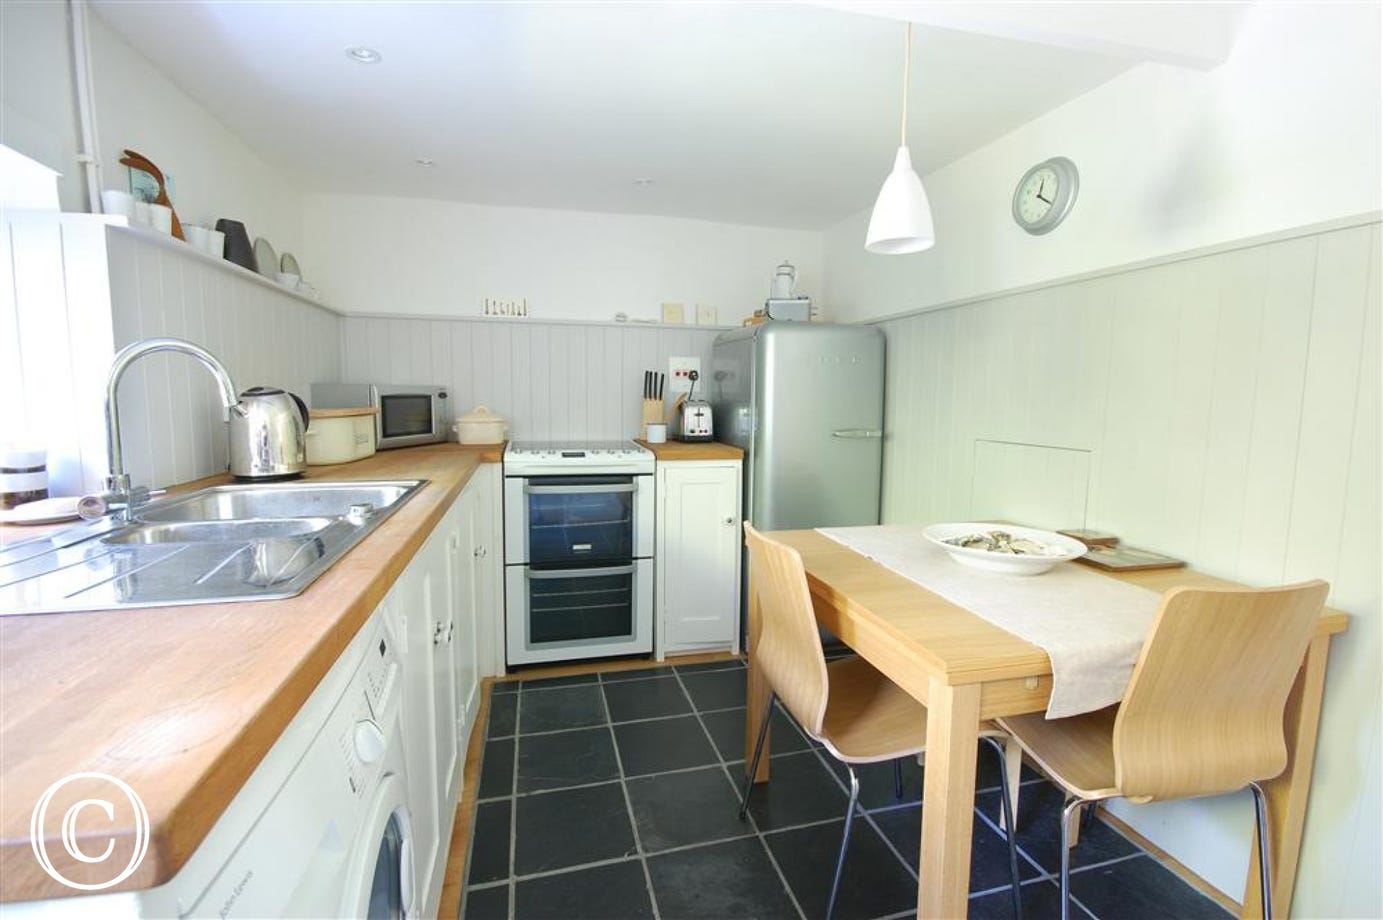 Modern and contemporary kitchen with most major appliances, well equipped and a table, chairs and stools, ideal for family meals